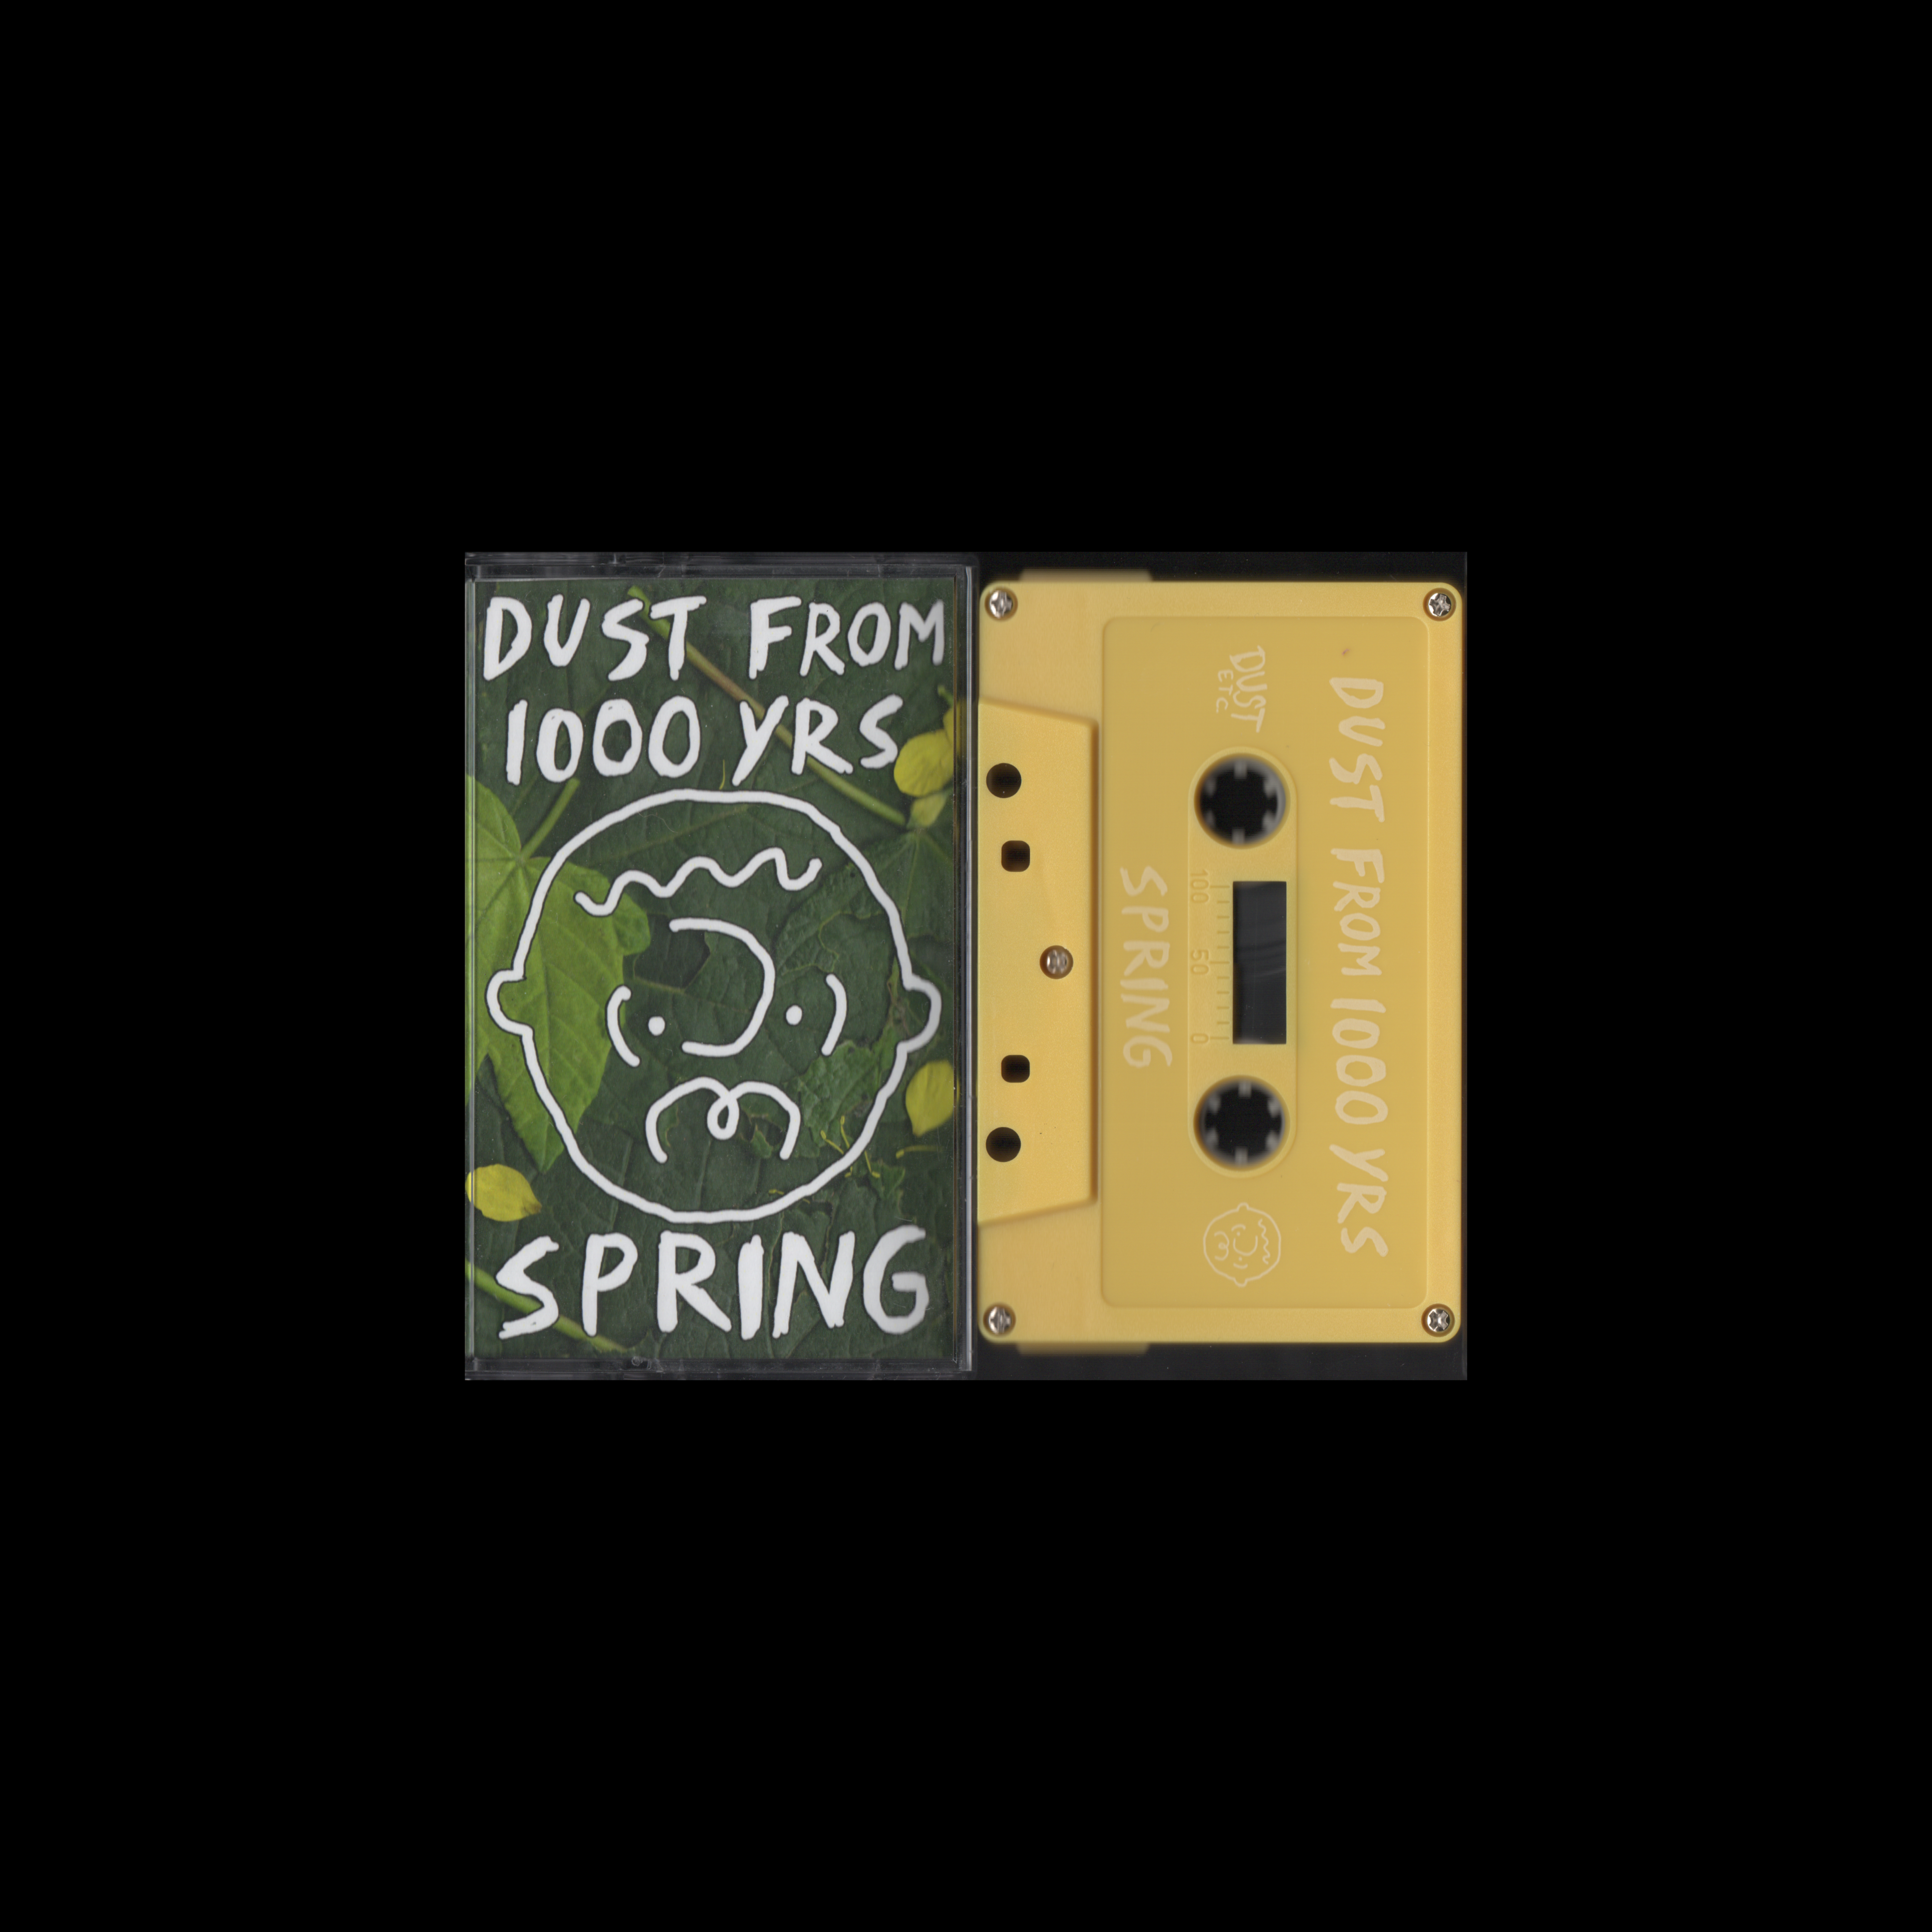 Dust From 1000 Yrs - Spring (Dust, Etc.)